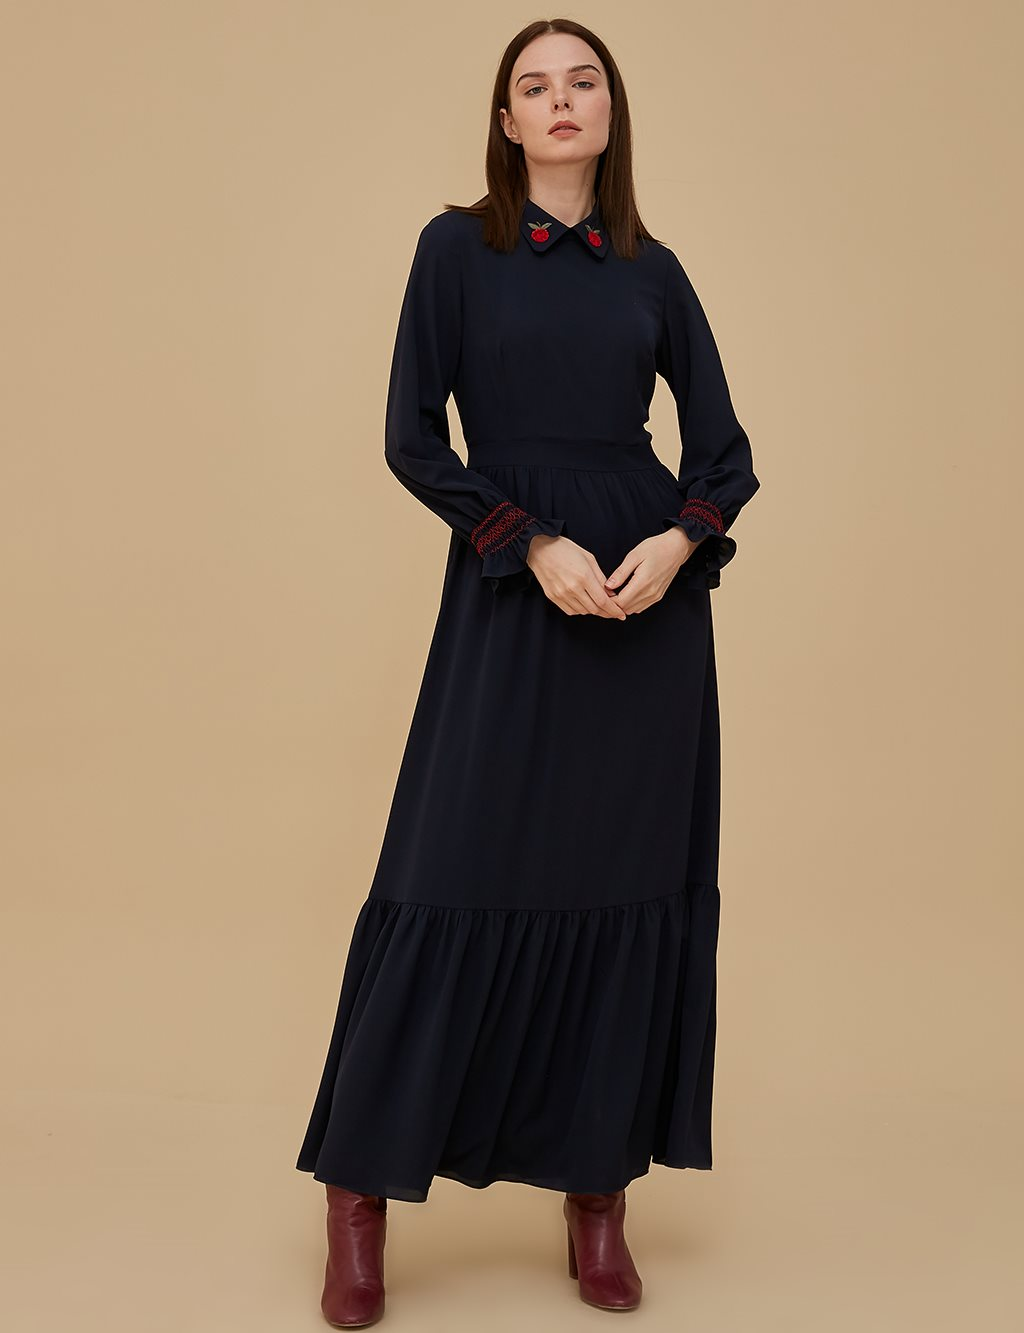 KYR Embroidered Dress A9 83001 Navy